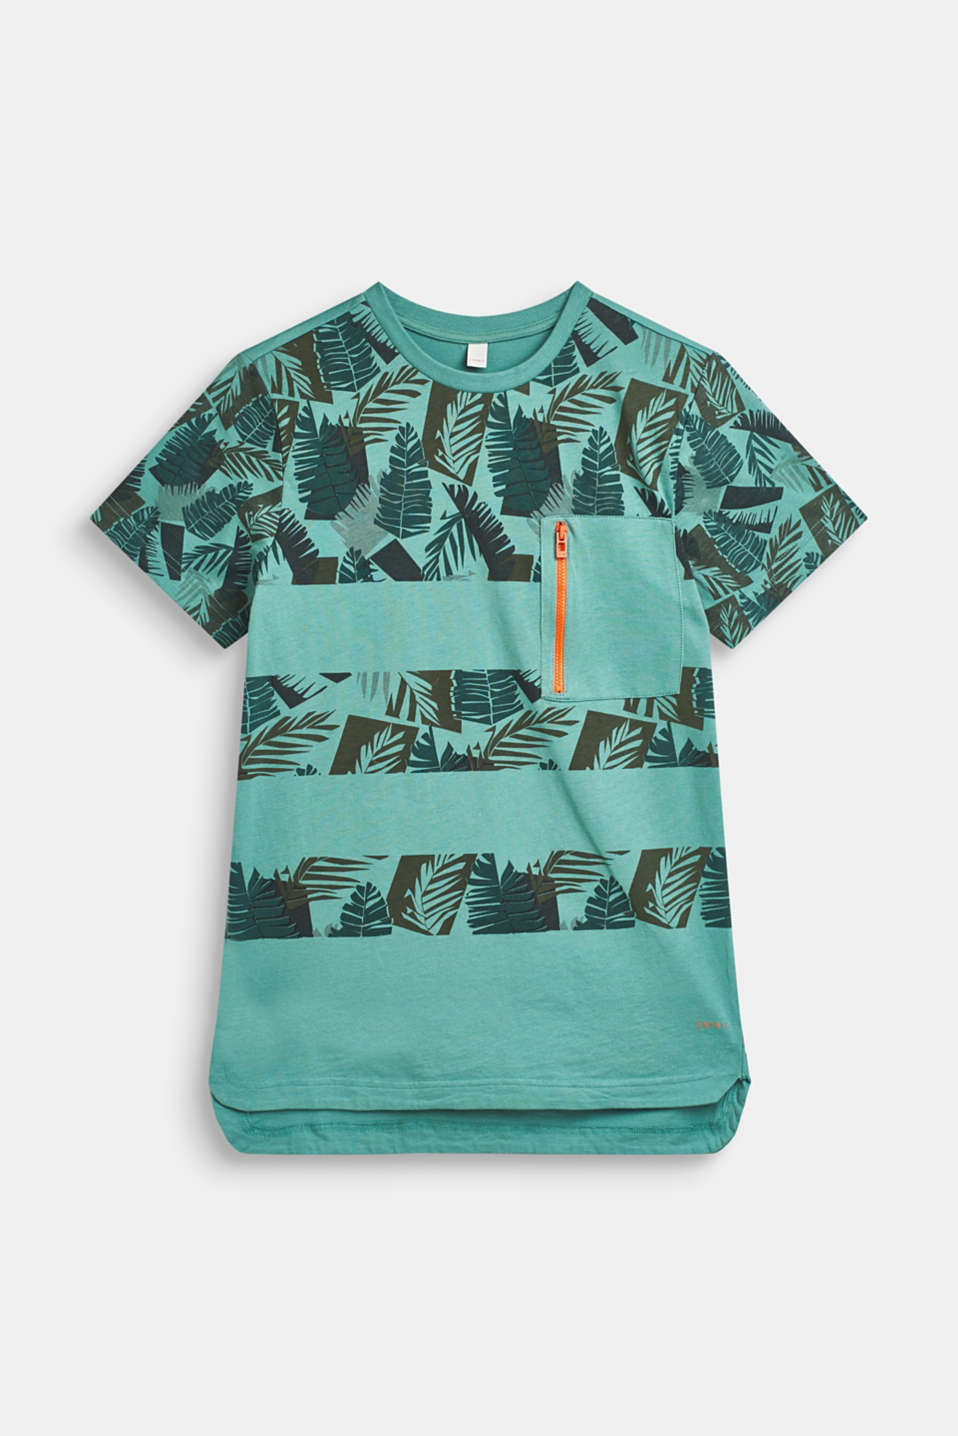 Esprit - T-shirt with tropical print, 100% cotton